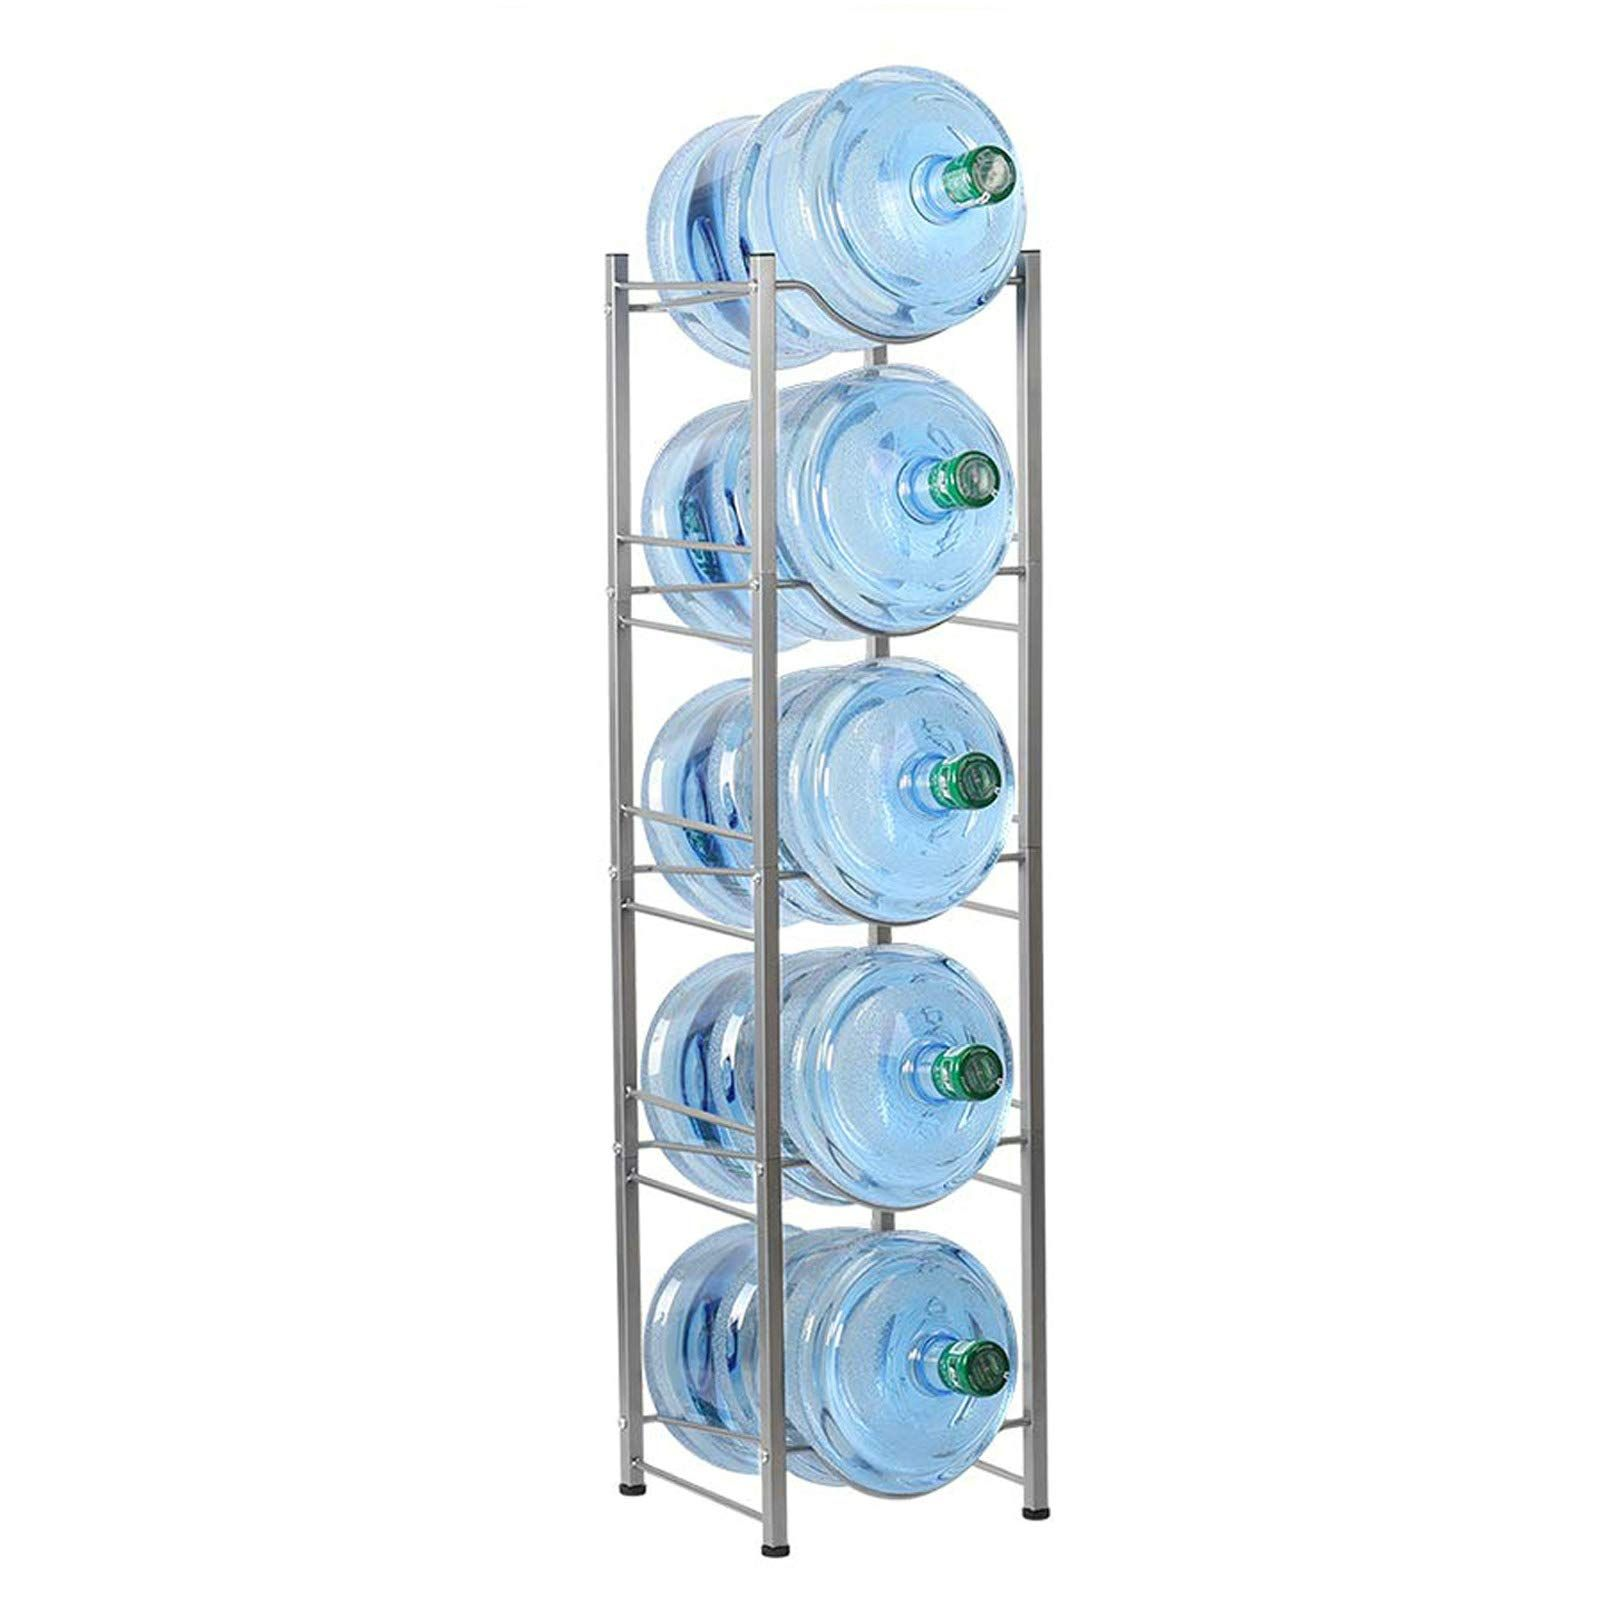 Pin On Water Dispensers And Coolers